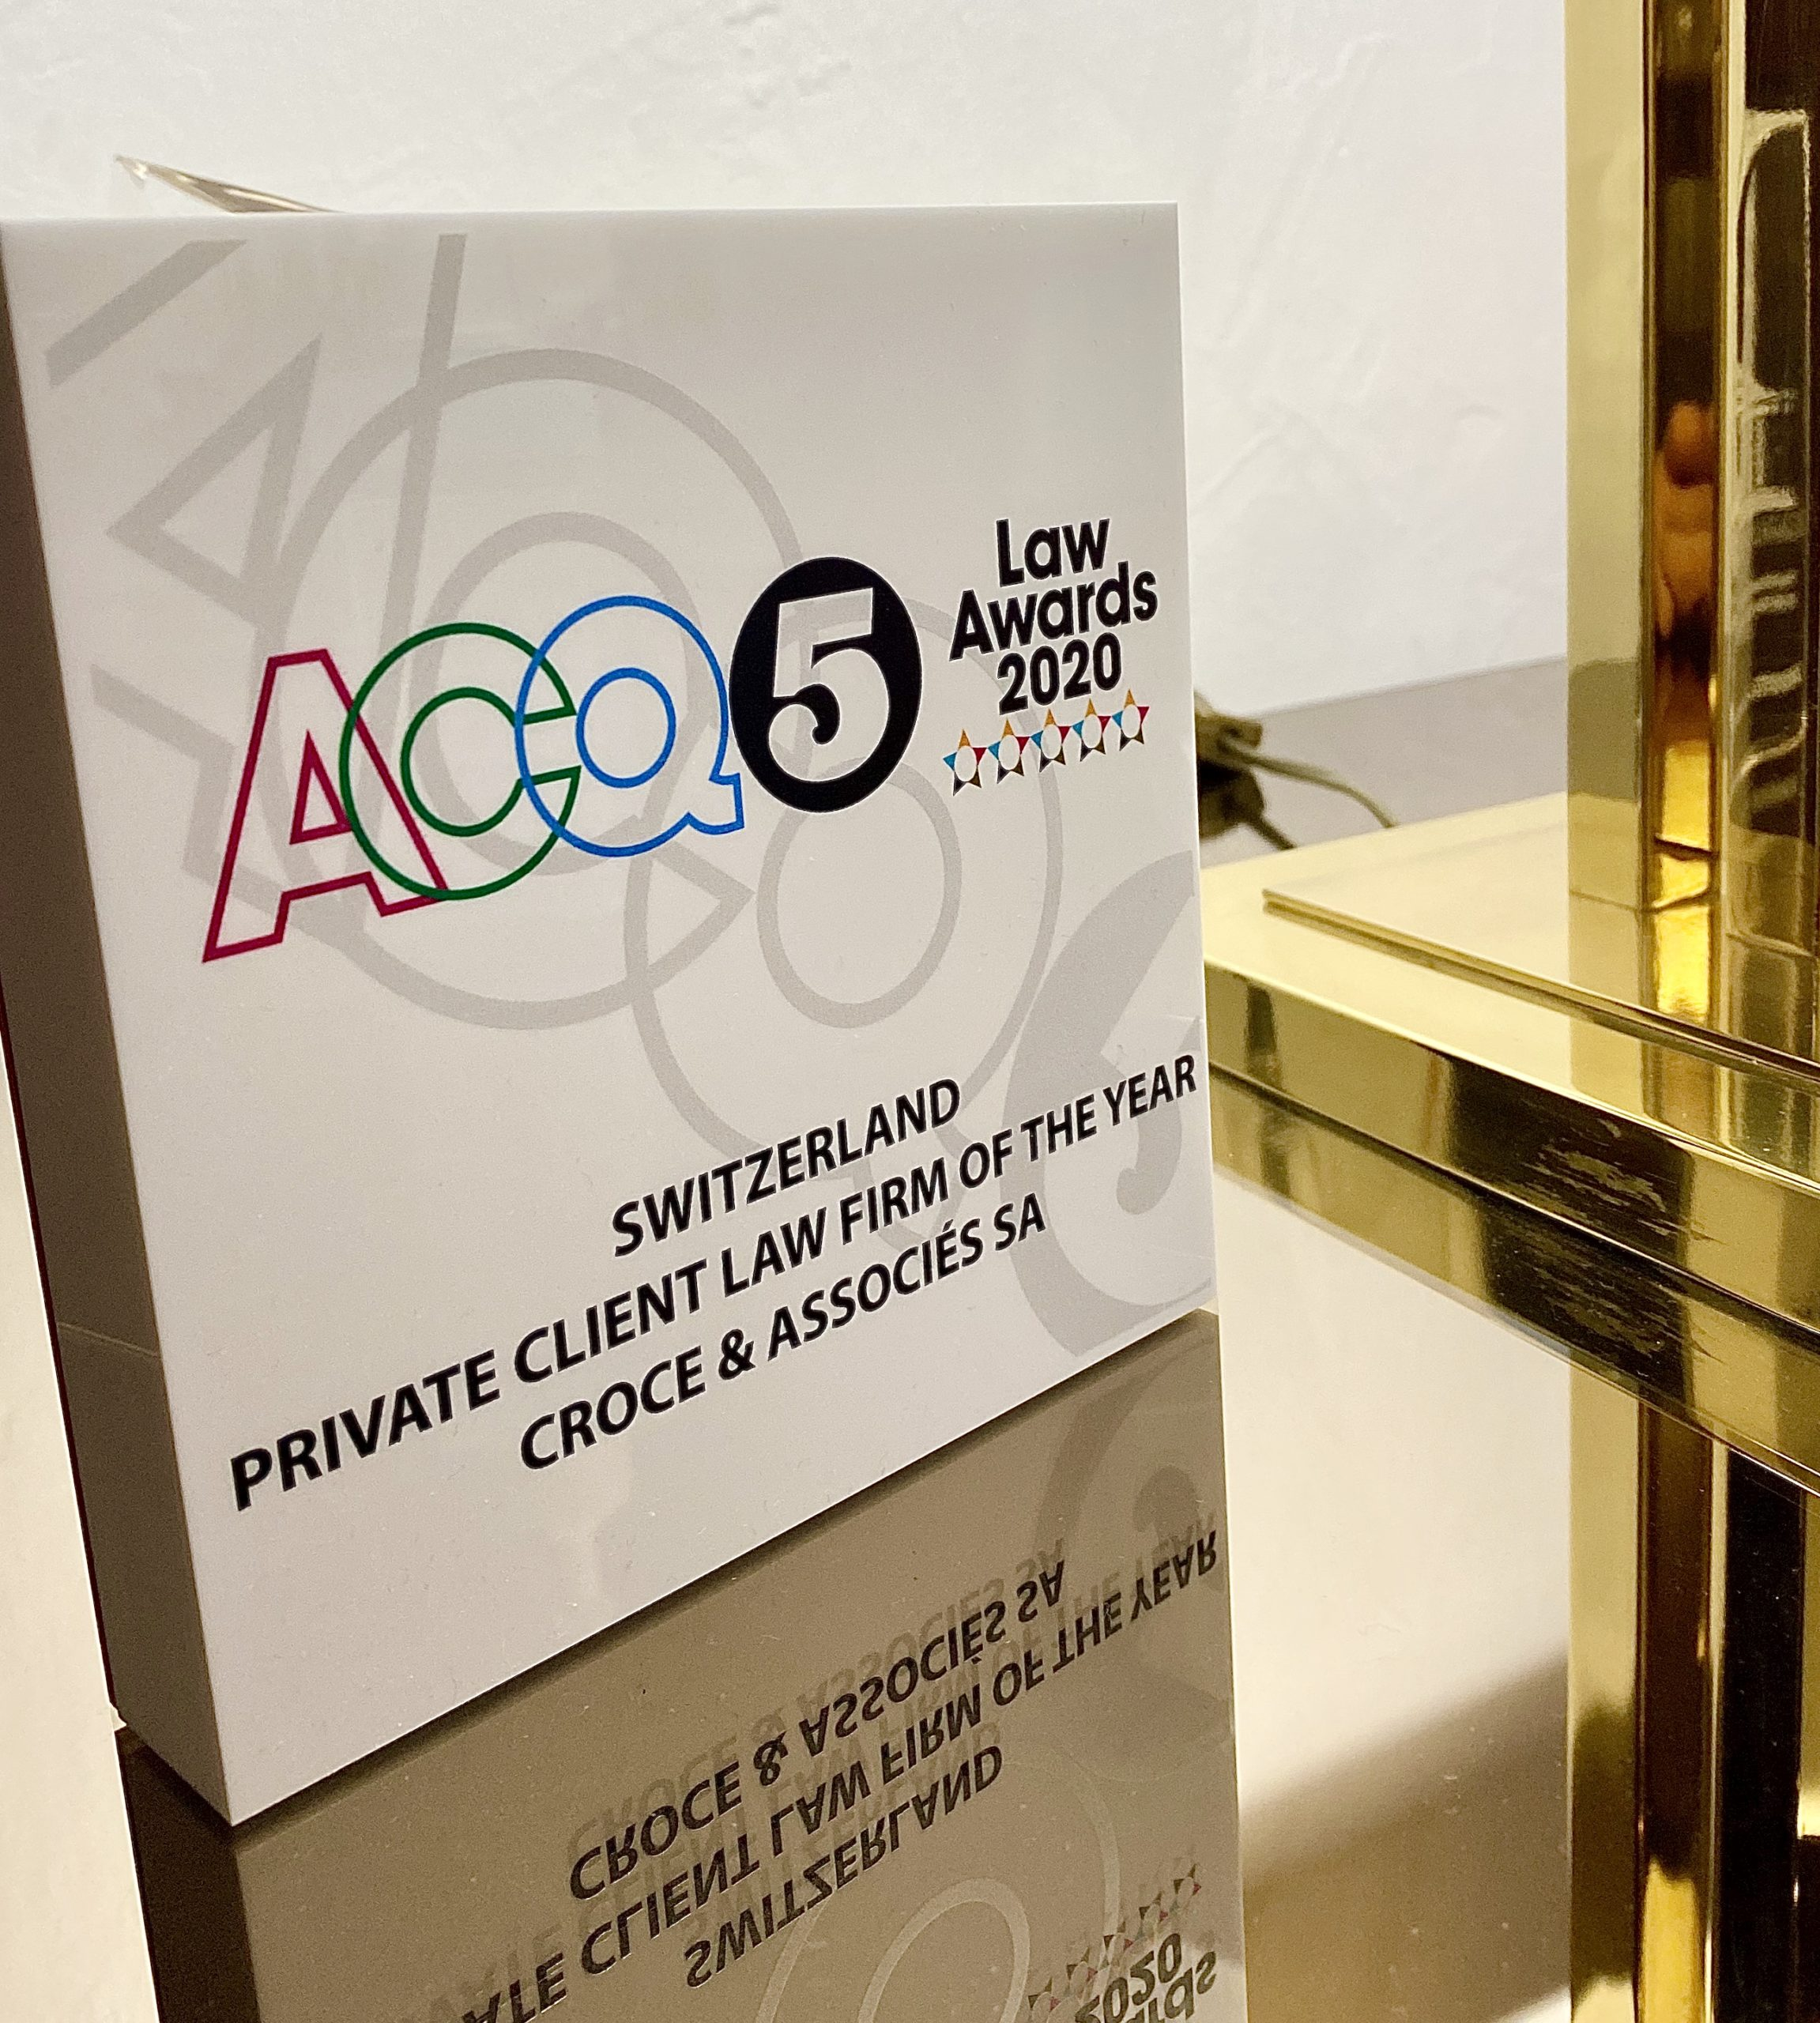 ACQ5 legal awards for CROCE & Associés SA